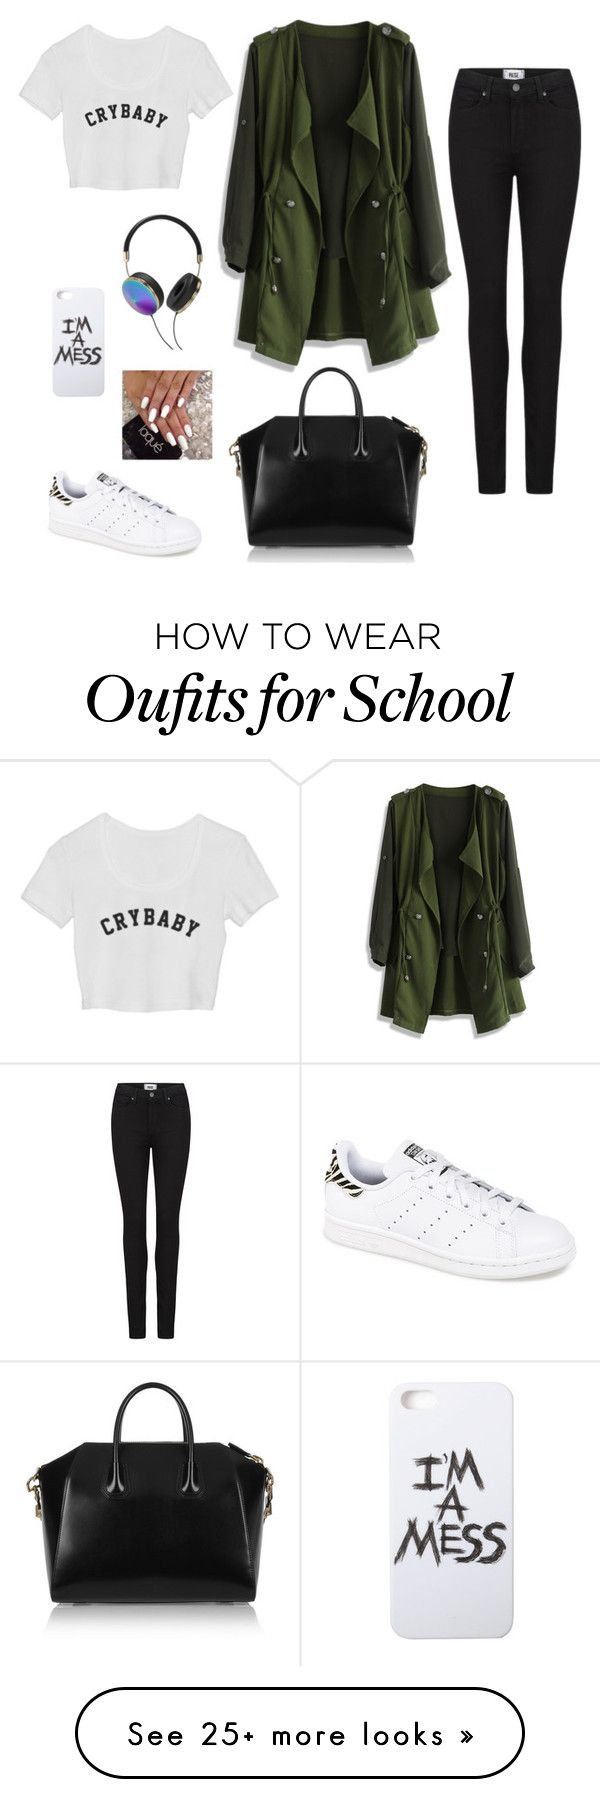 """School outfit (monday)"" by hopelessdreamer047 on Polyvore featuring мода, Chicwish, Paige Denim, Givenchy, Frends, LAUREN MOSHI и adidas"